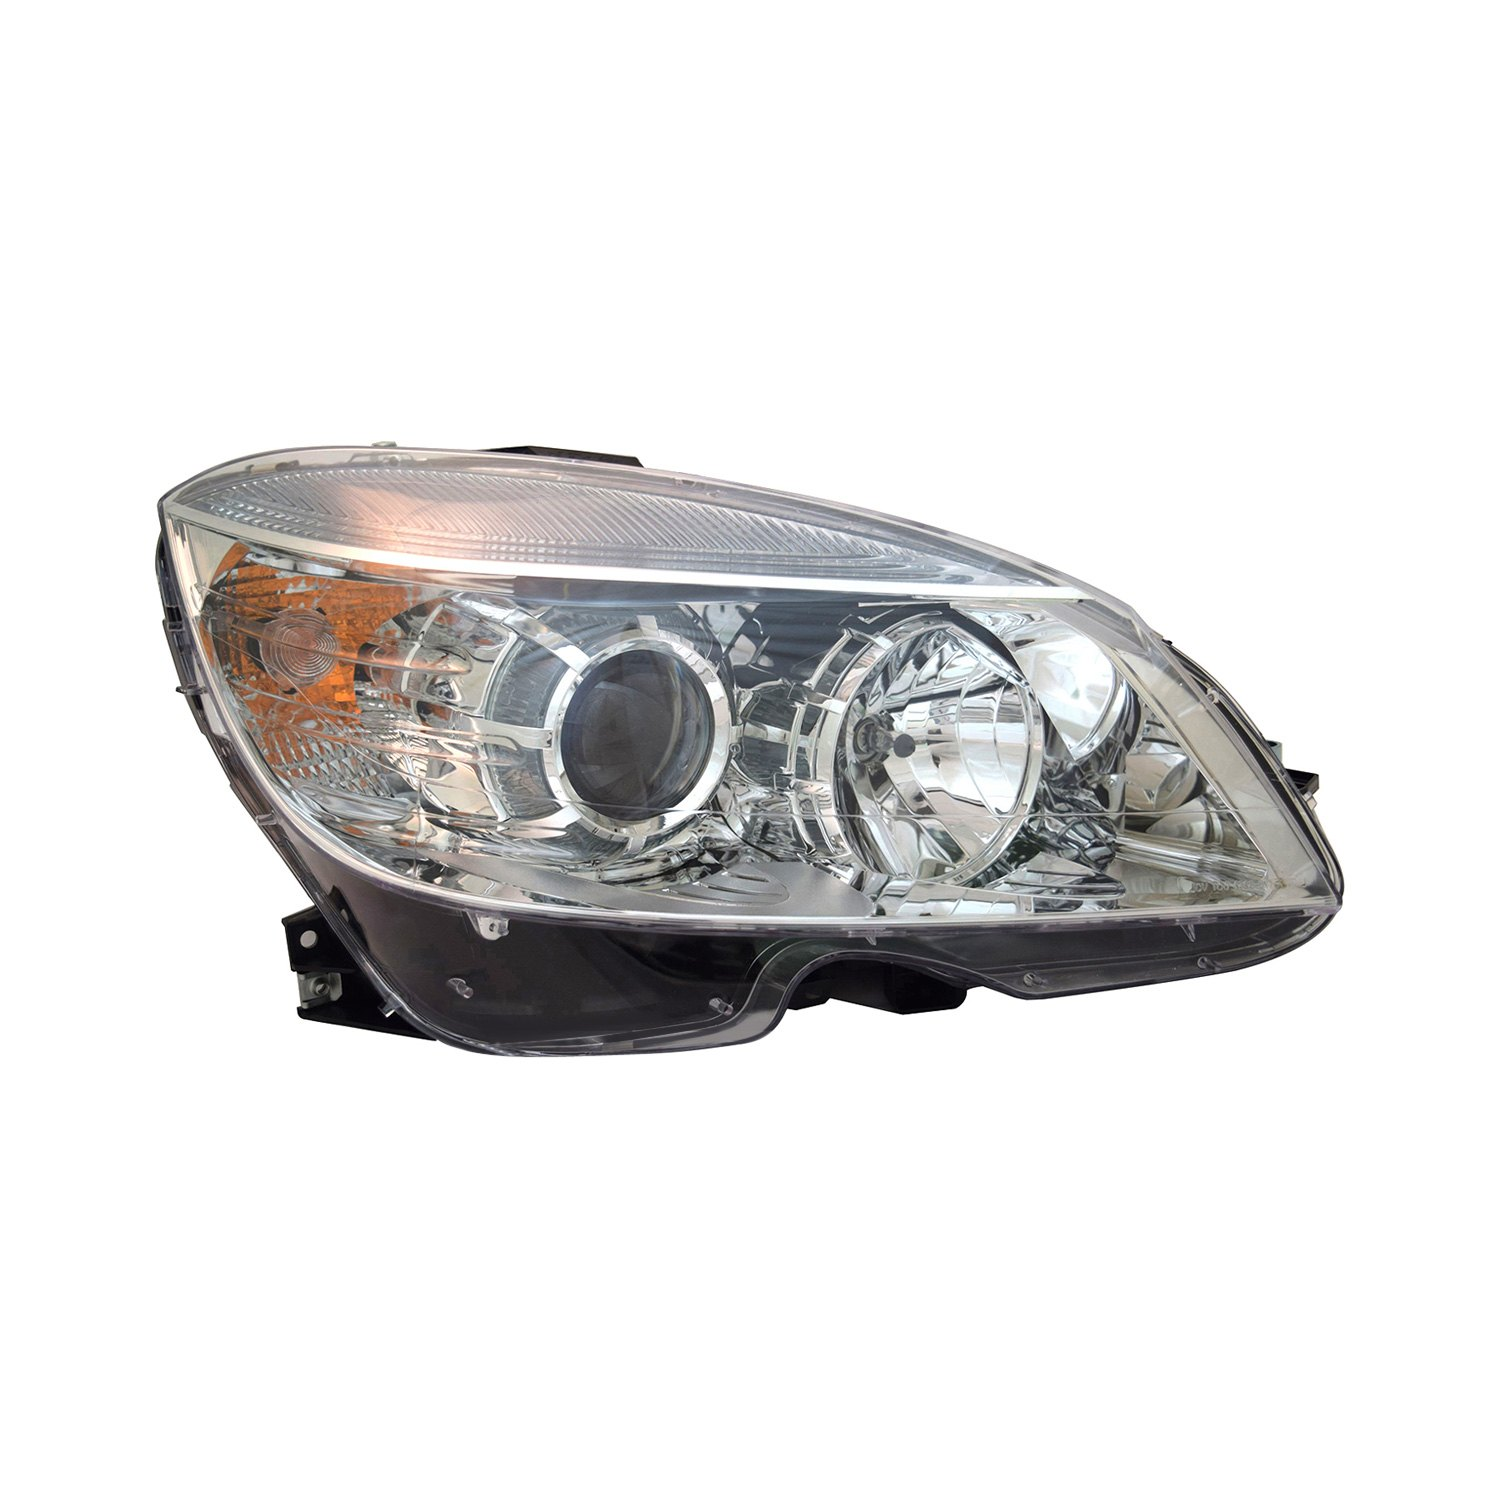 Tyc mercedes c class 2009 replacement headlight for Mercedes benz headlight replacement